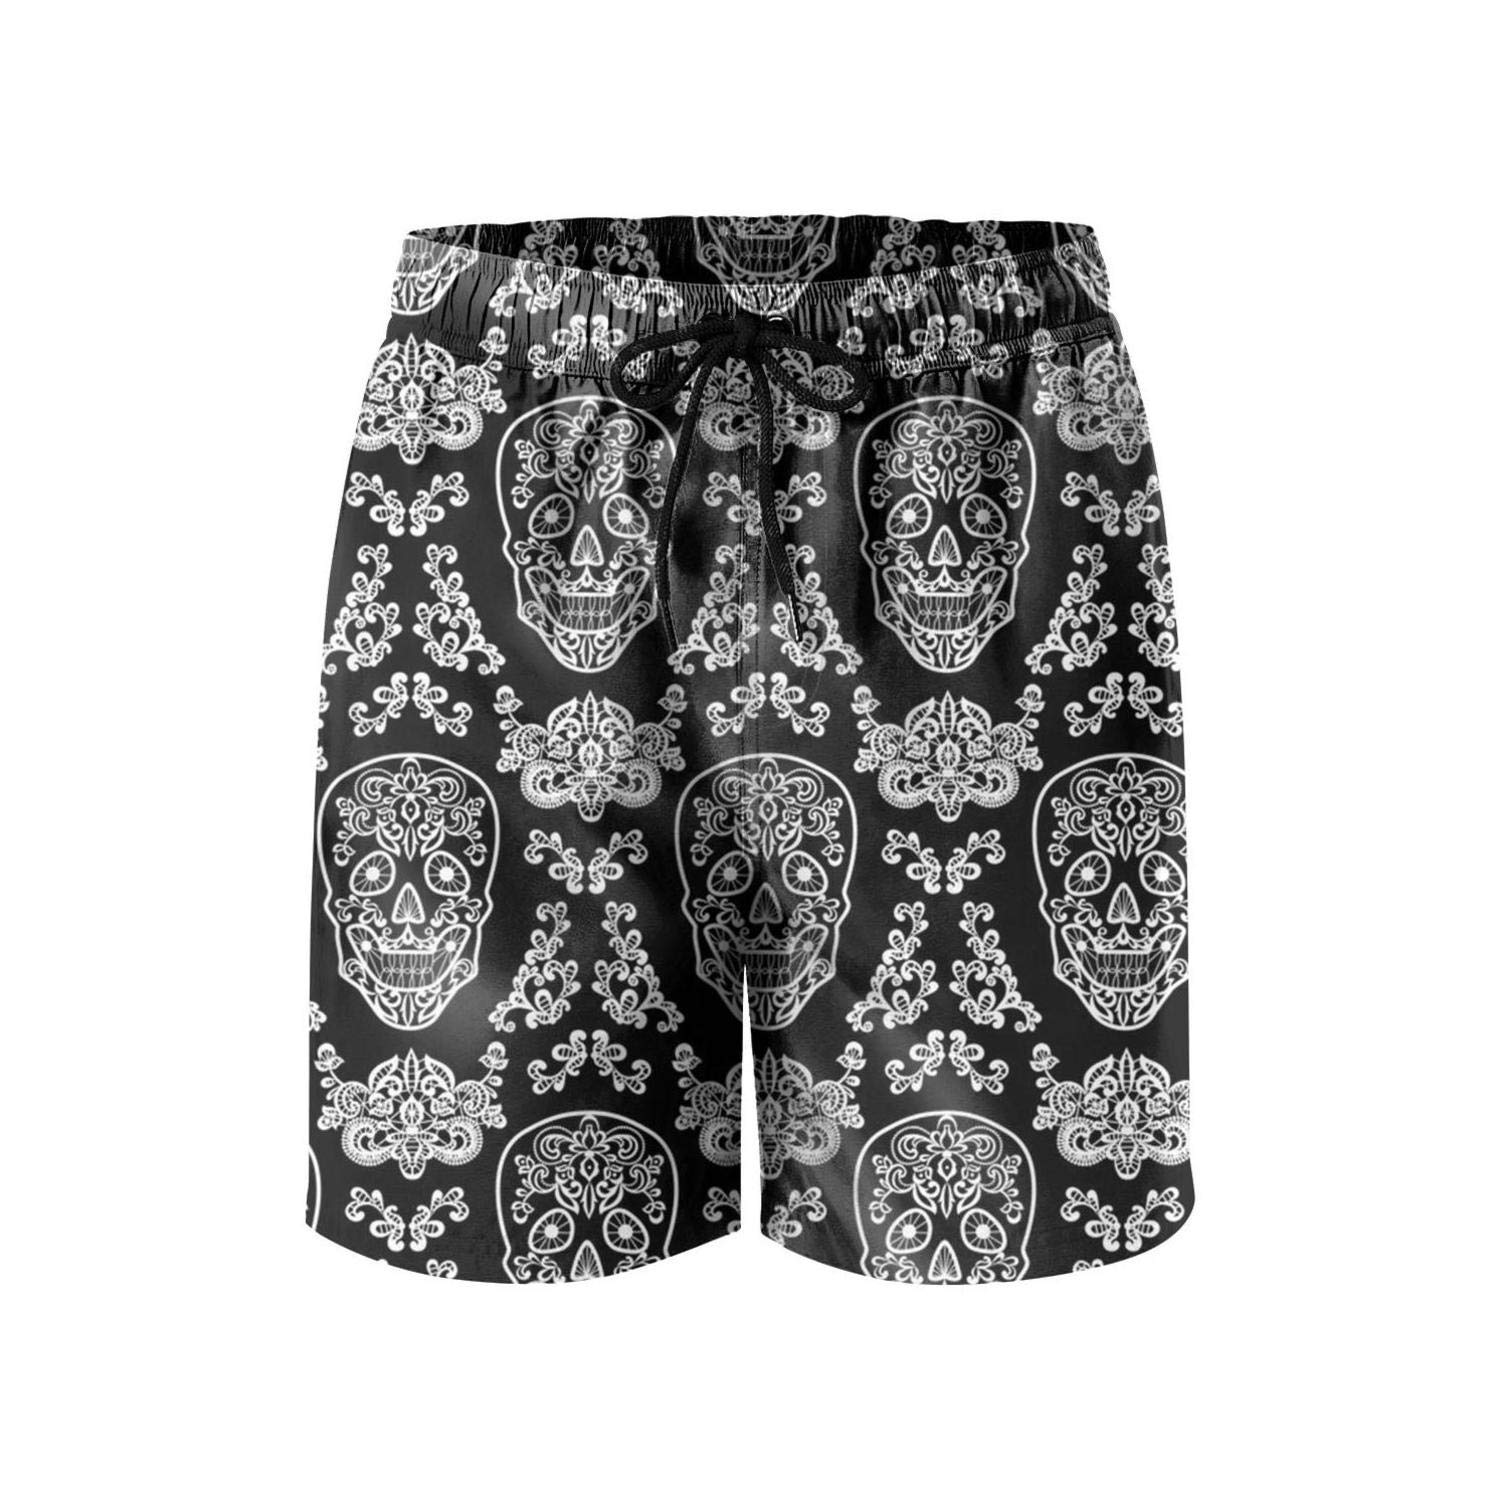 a760783f35c Amazon.com  SNM HILL Mens Quick Dry Beach Shorts Psychedelic Pot Leaf Skull  Floral Boardshorts Swim Surf Trunks  Clothing